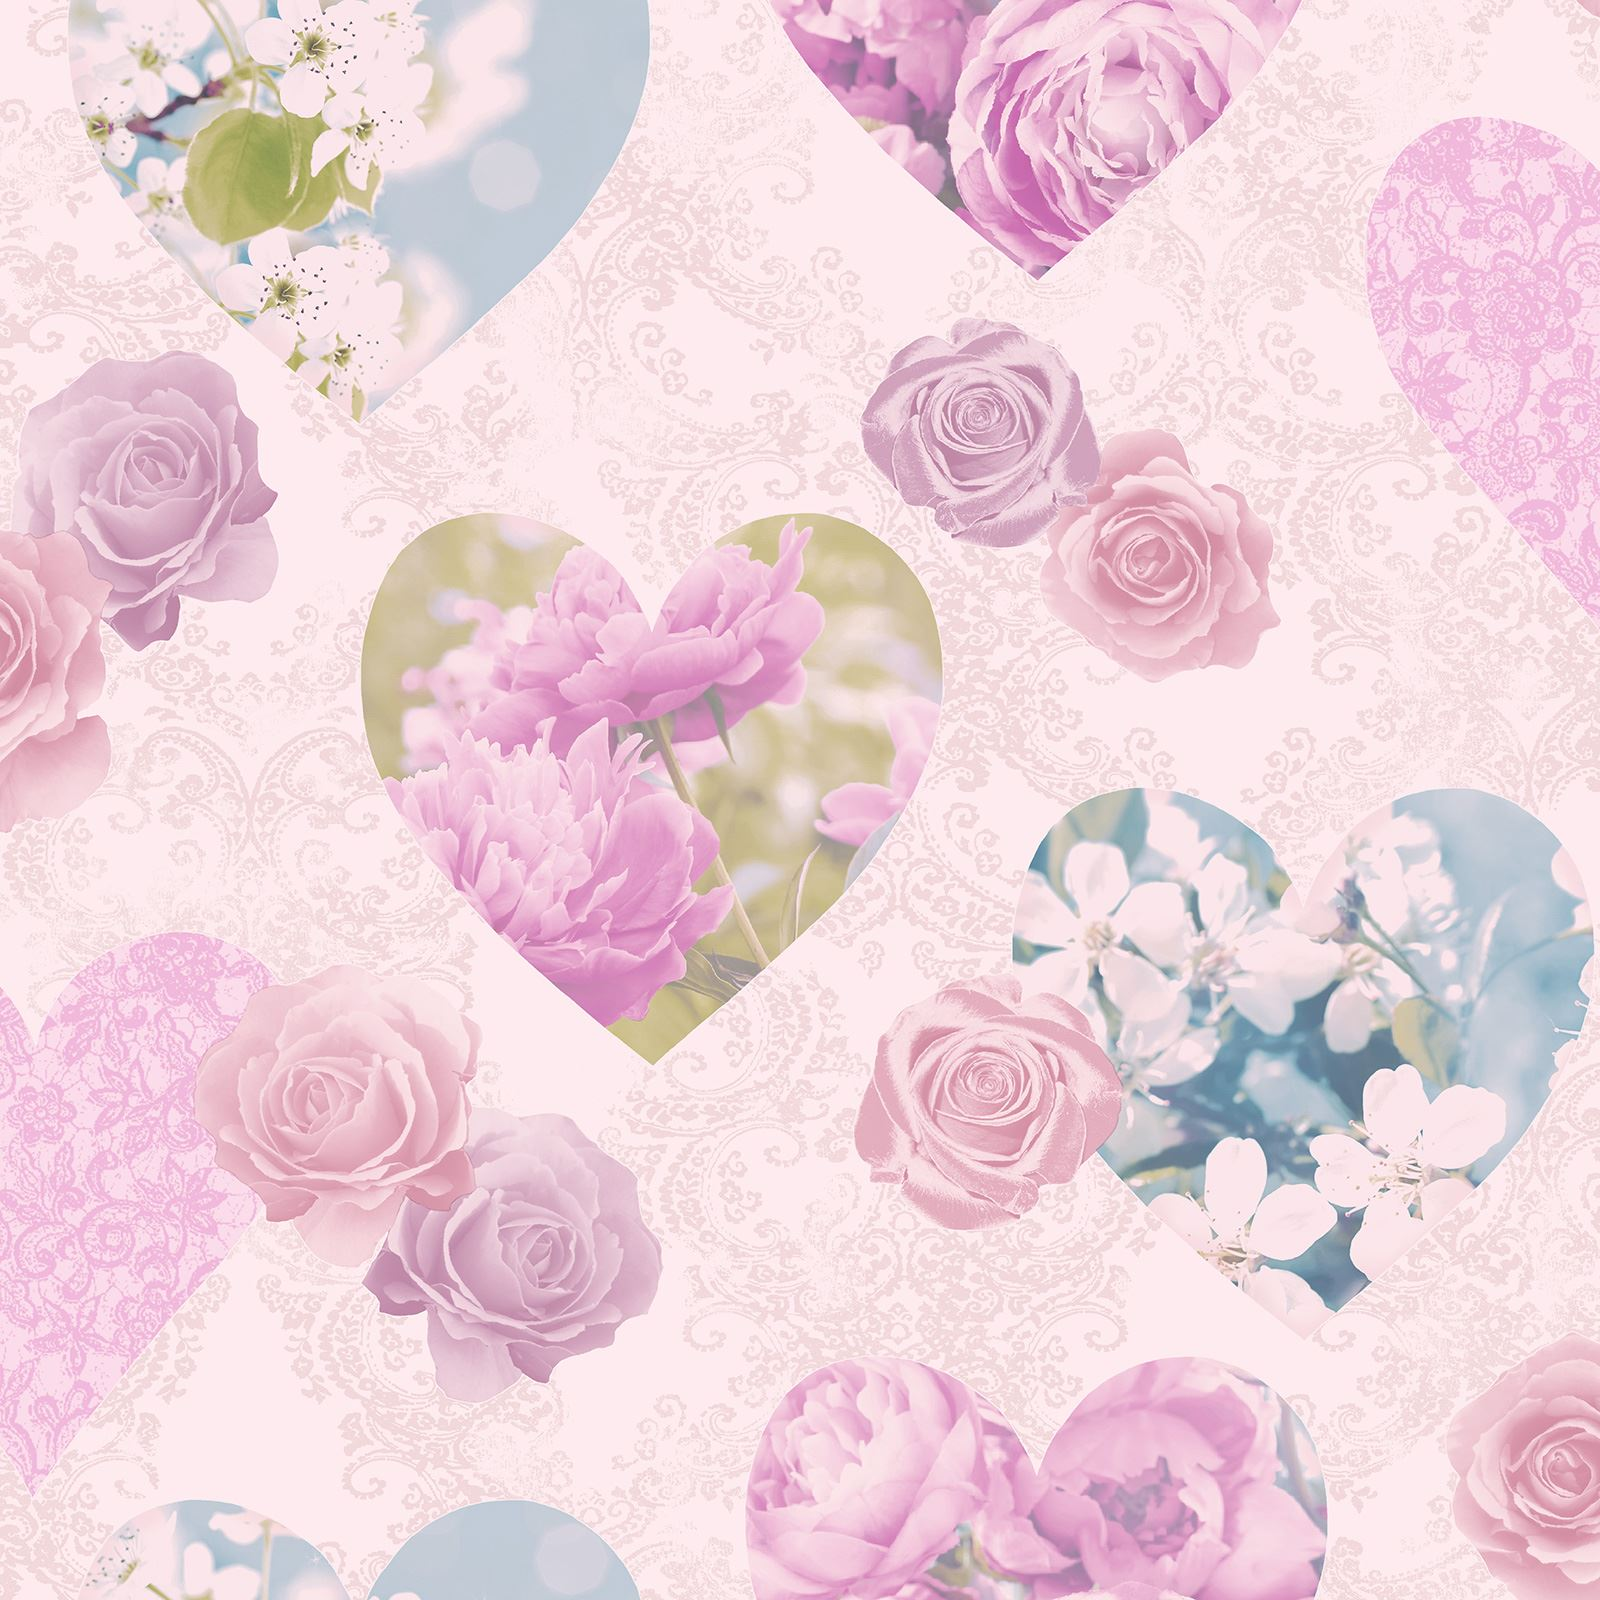 HEART THEMED WALLPAPER GIRLS BEDROOM PINK VARIOUS DESIGNS